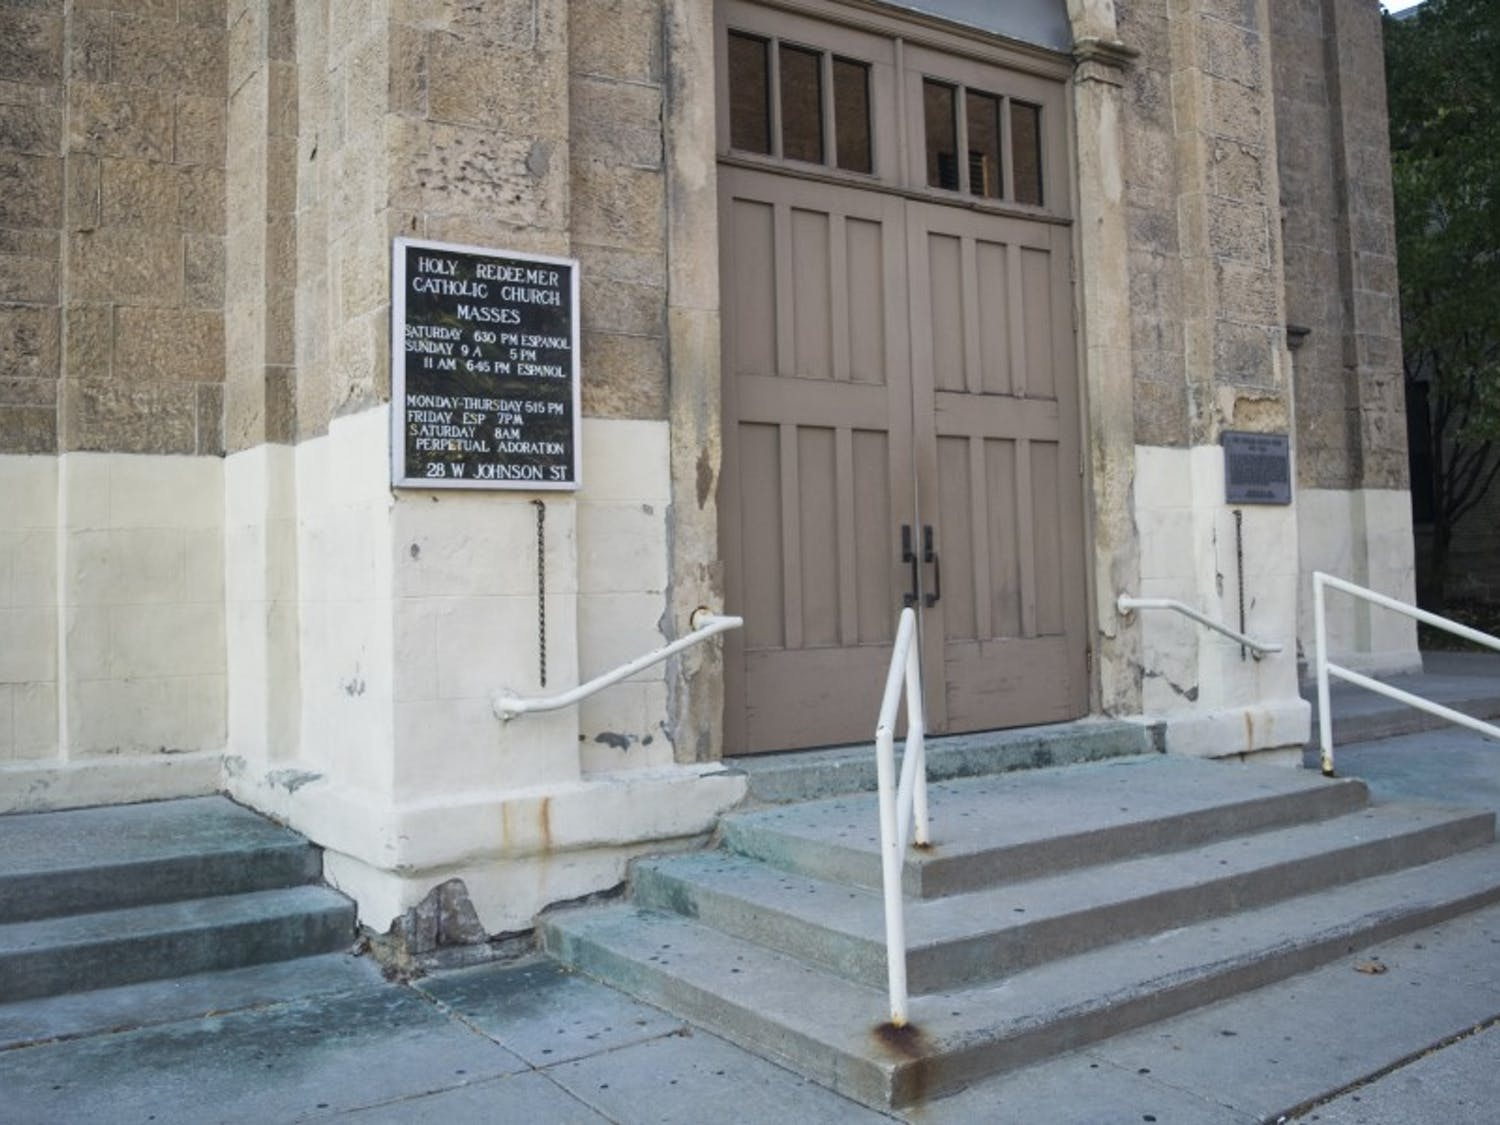 Suburban churches in the Madison area have taken precautions regarding additional security measures, while downtown churches have been more reluctant.